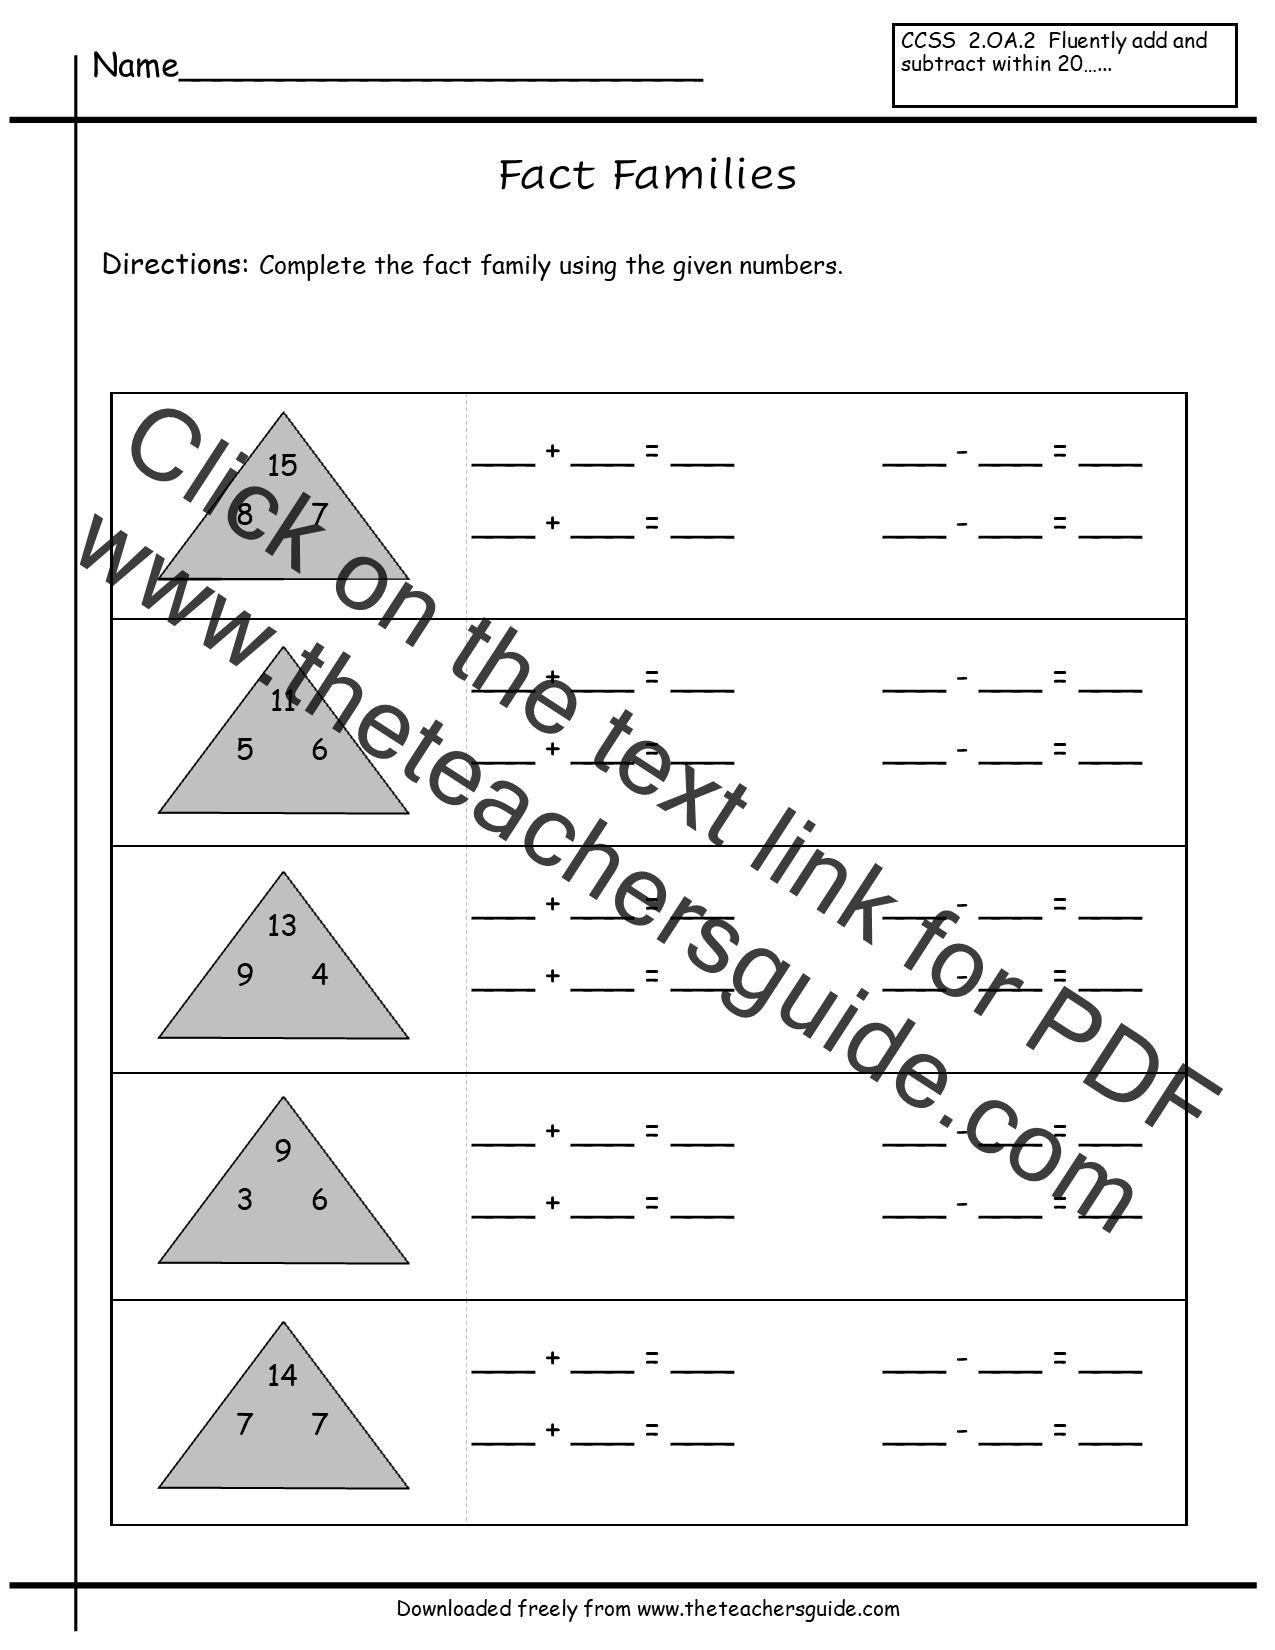 Comparing Numbers Worksheets from The Teachers Guide – Fact Families Worksheets